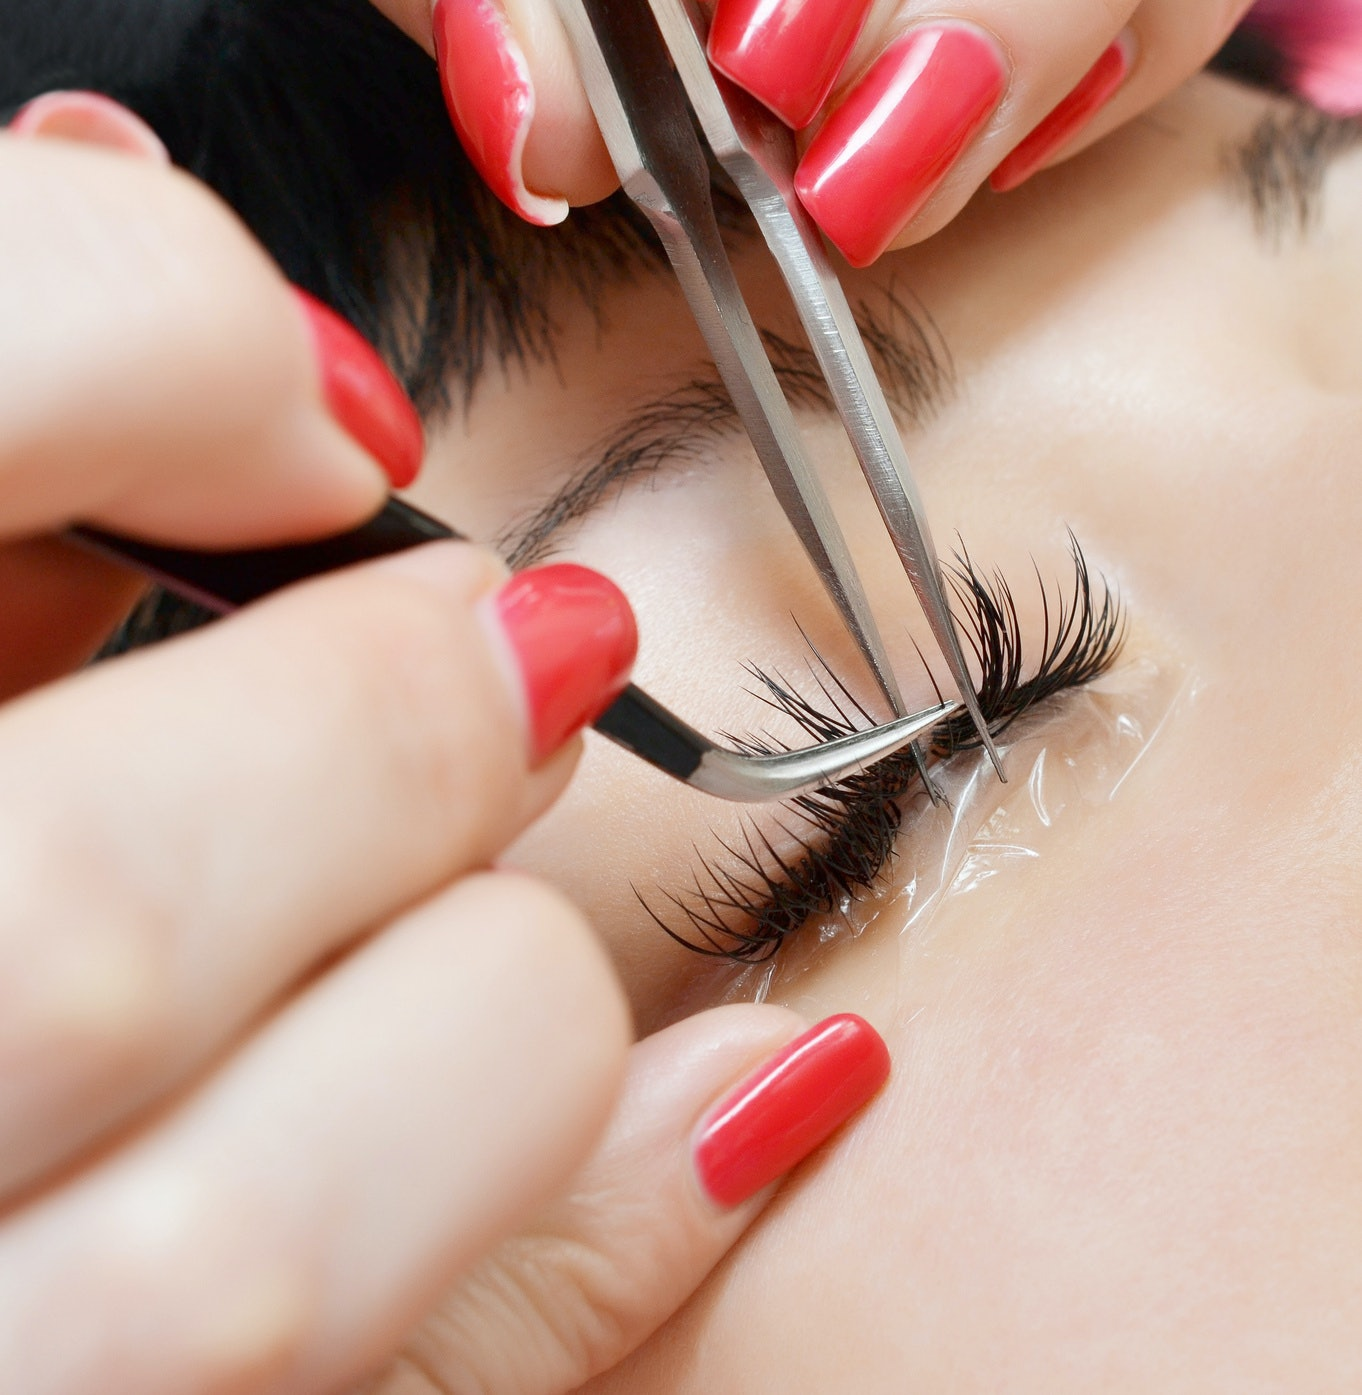 Can You Be Allergic To Eyelash Extensions? Here's What You Need To ...